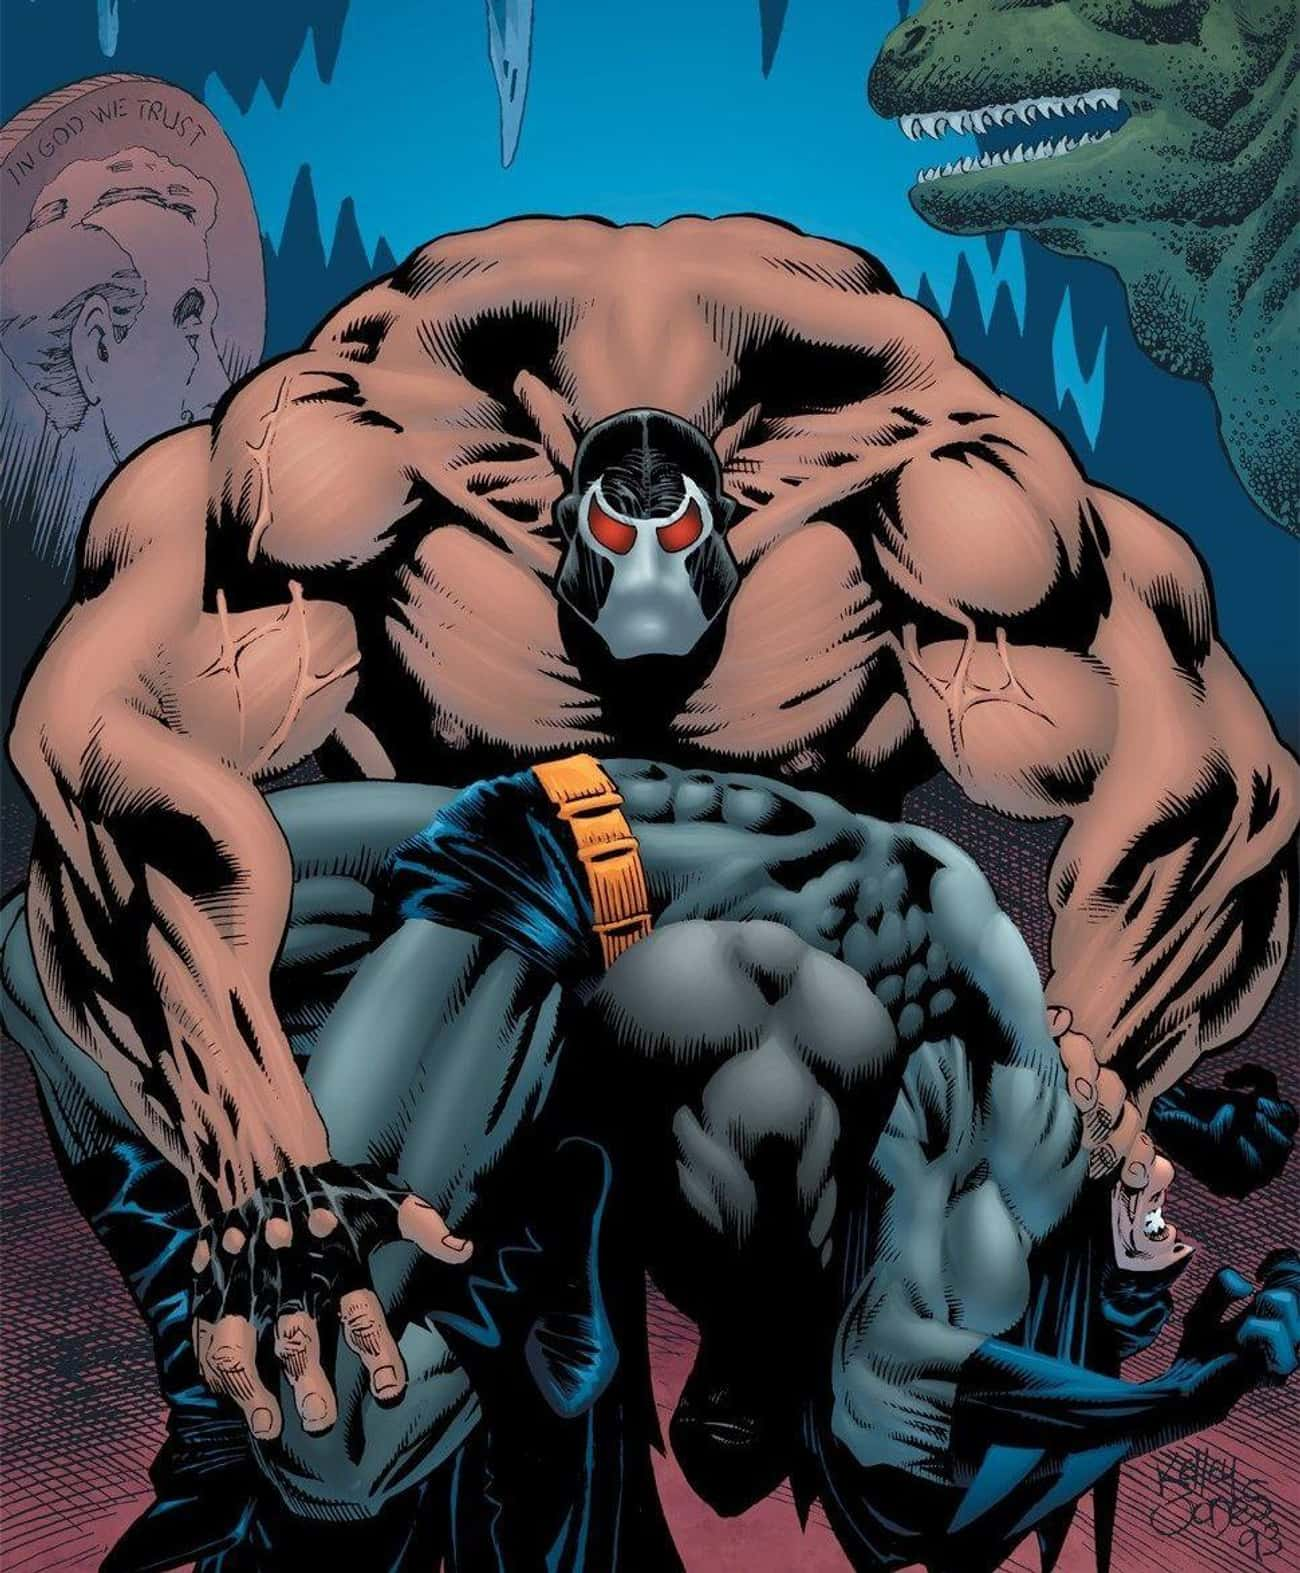 Little Is Known About The Joke is listed (or ranked) 3 on the list Forget The Joker - Why Bane Is Batman's True Arch Nemesis